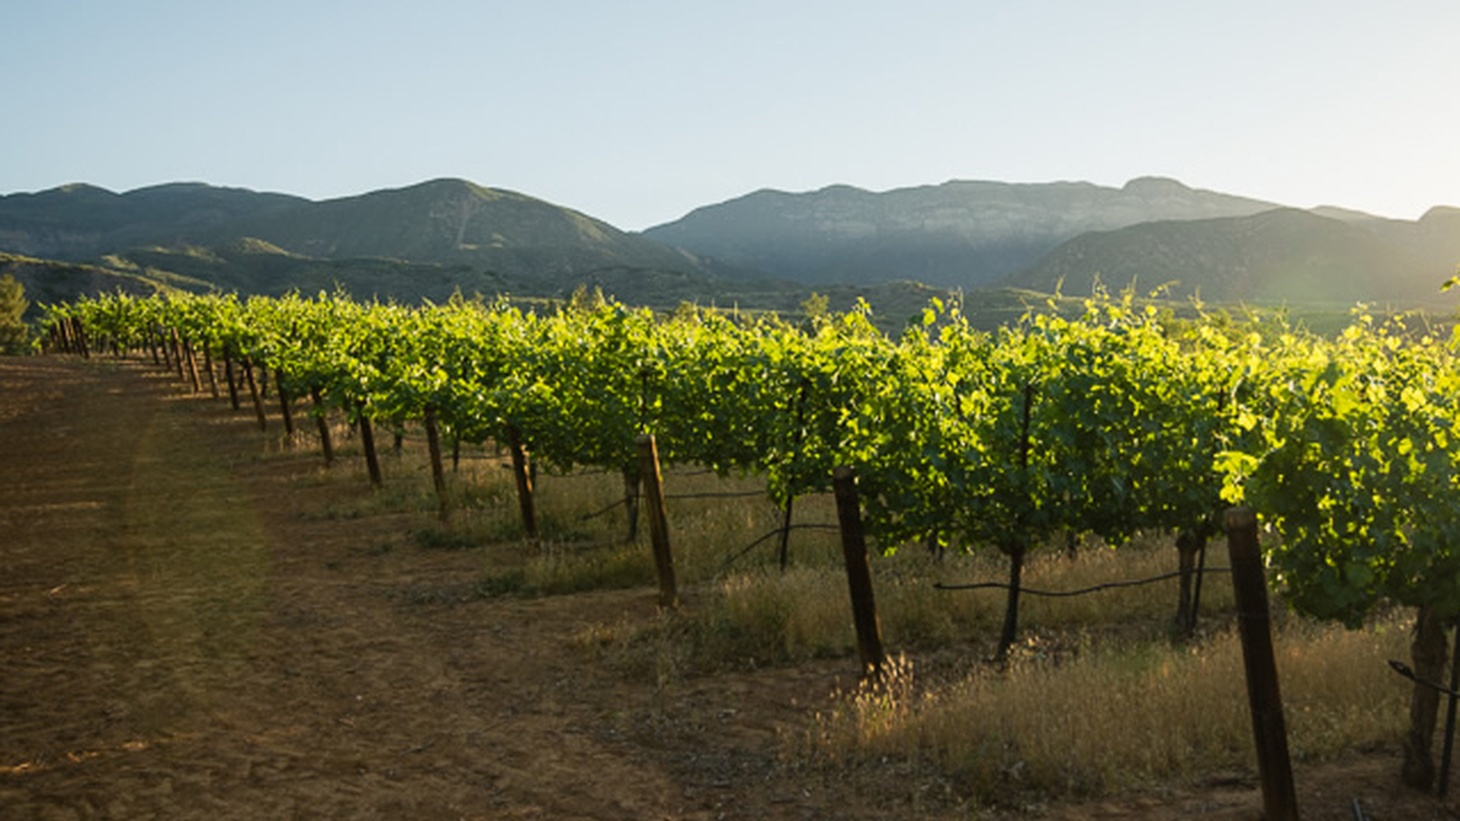 The Ojai Vineyard promised great things for wine growing in the Ojai Valley when it was founded in 1983. But a grape virus called Pierce's disease soon began ravaging the region's vines.